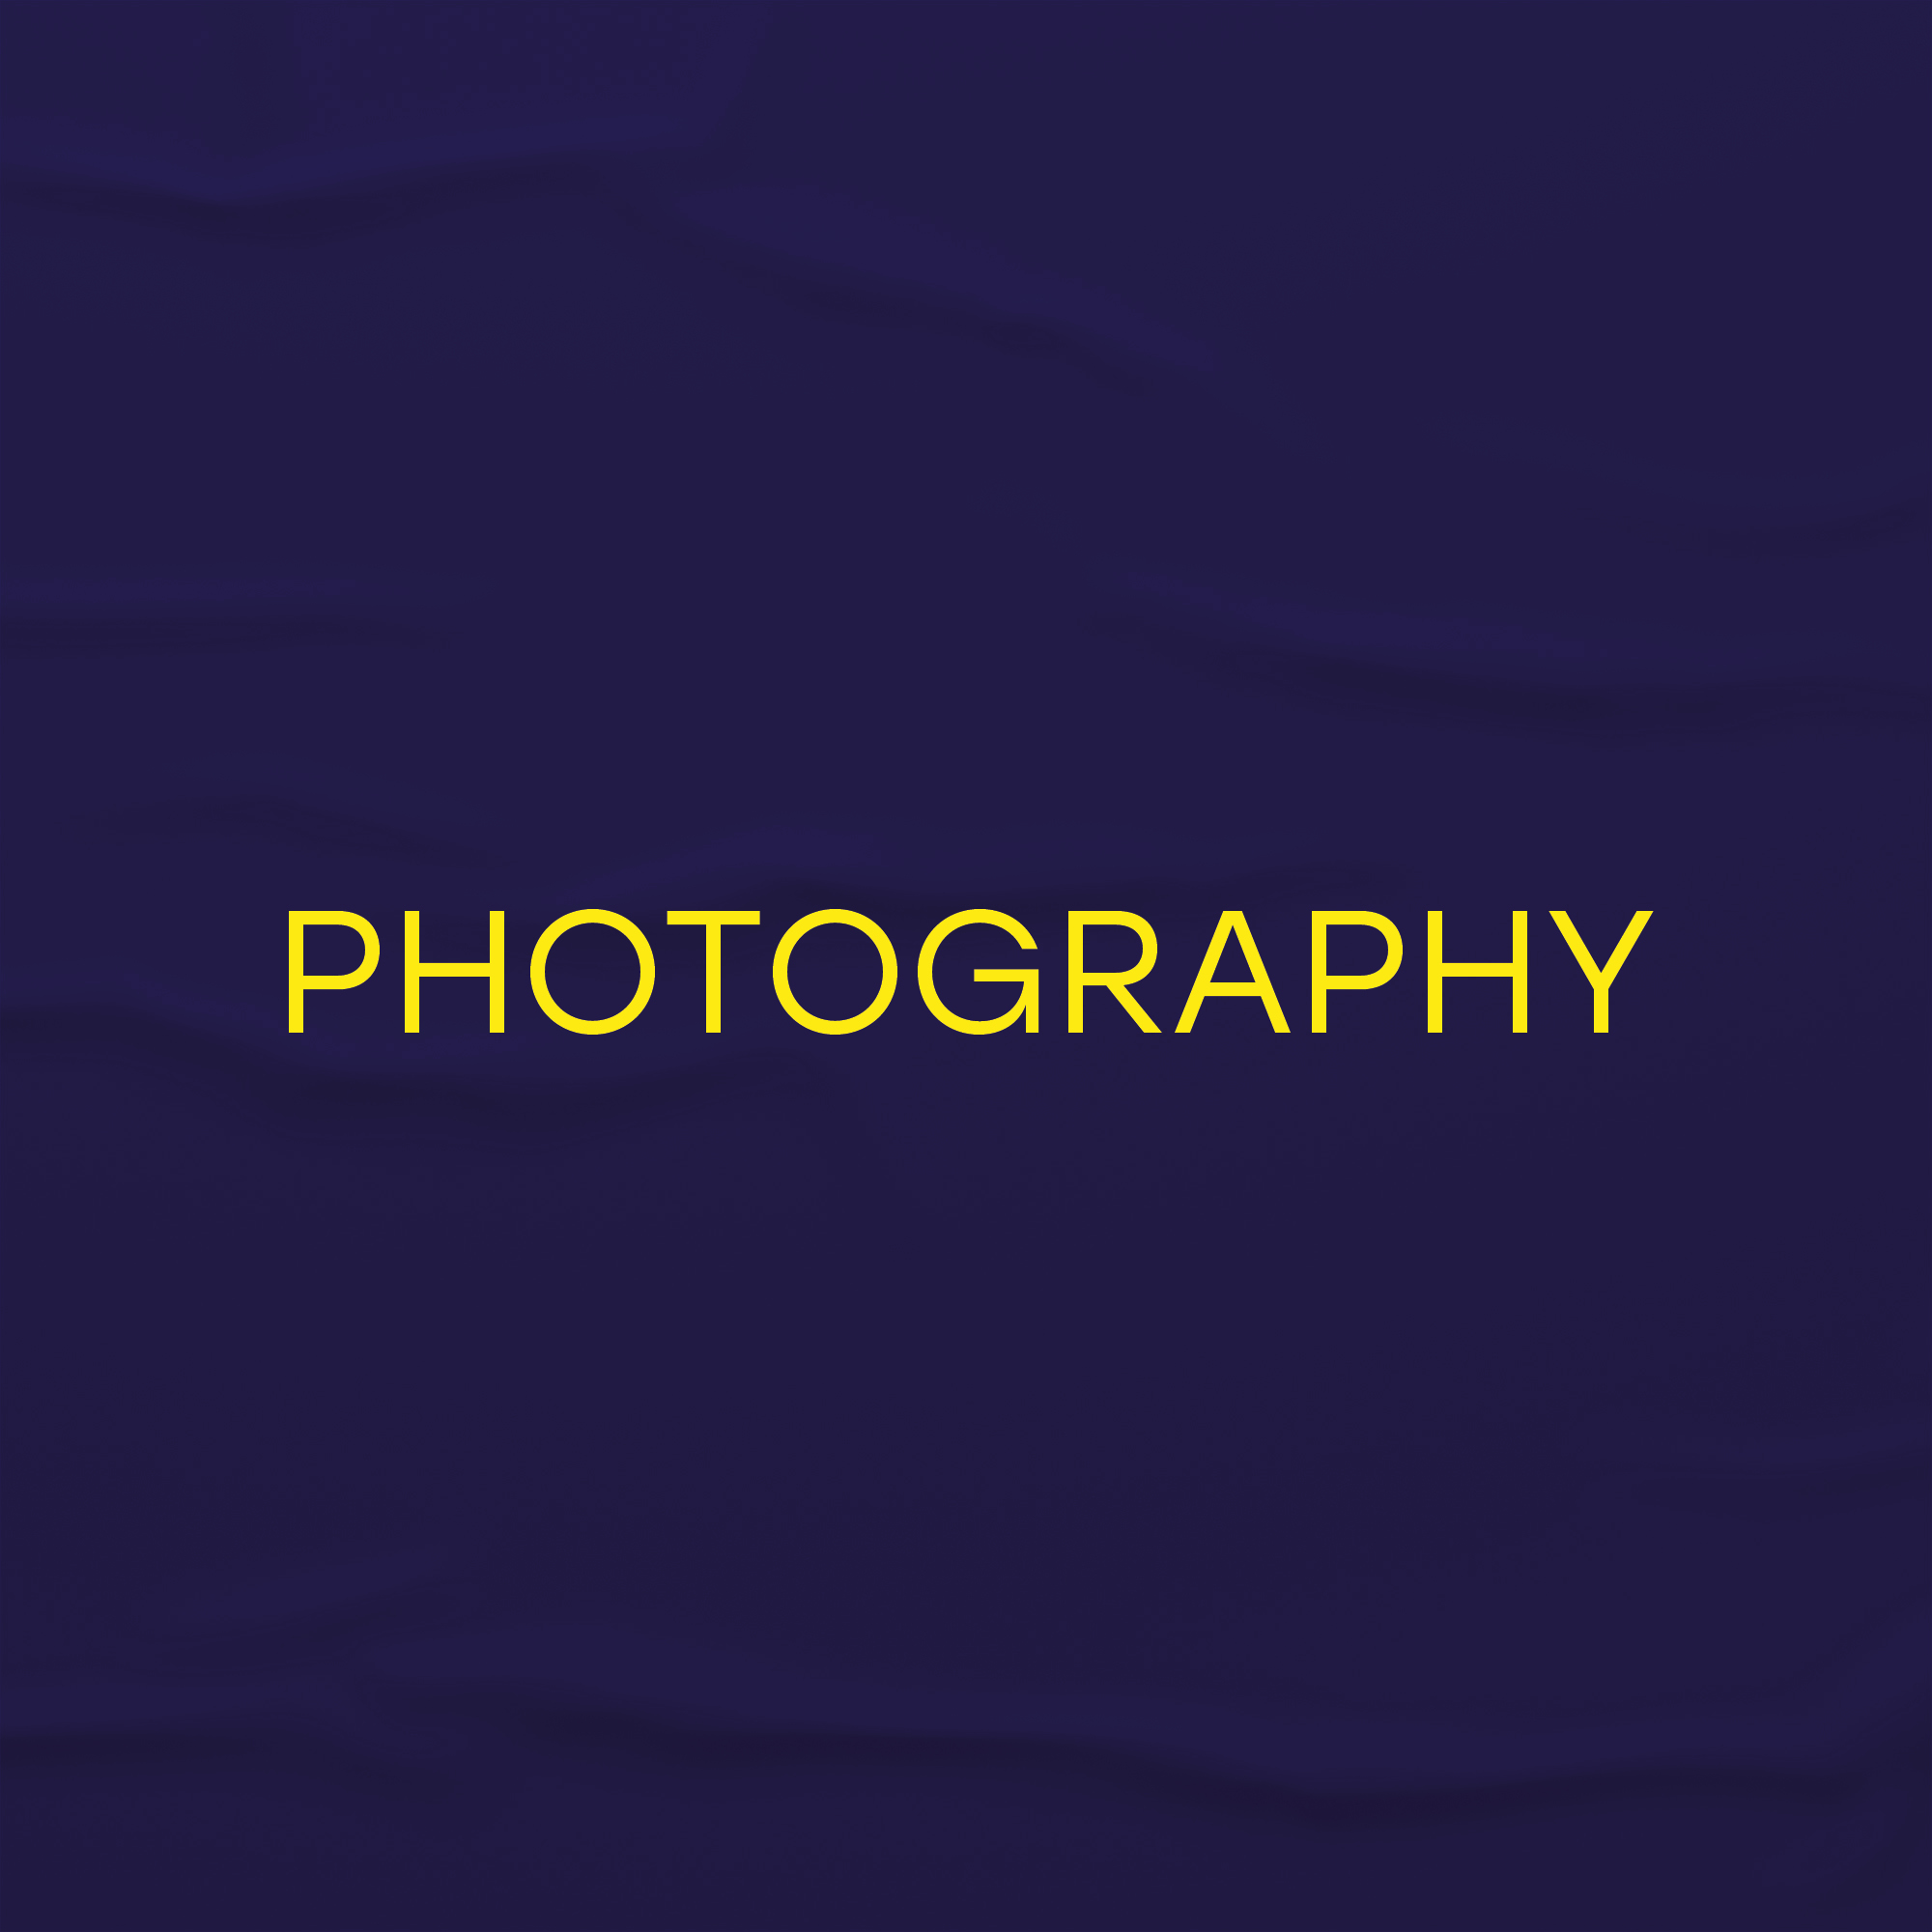 photography Services Icons October 2020 - Photography